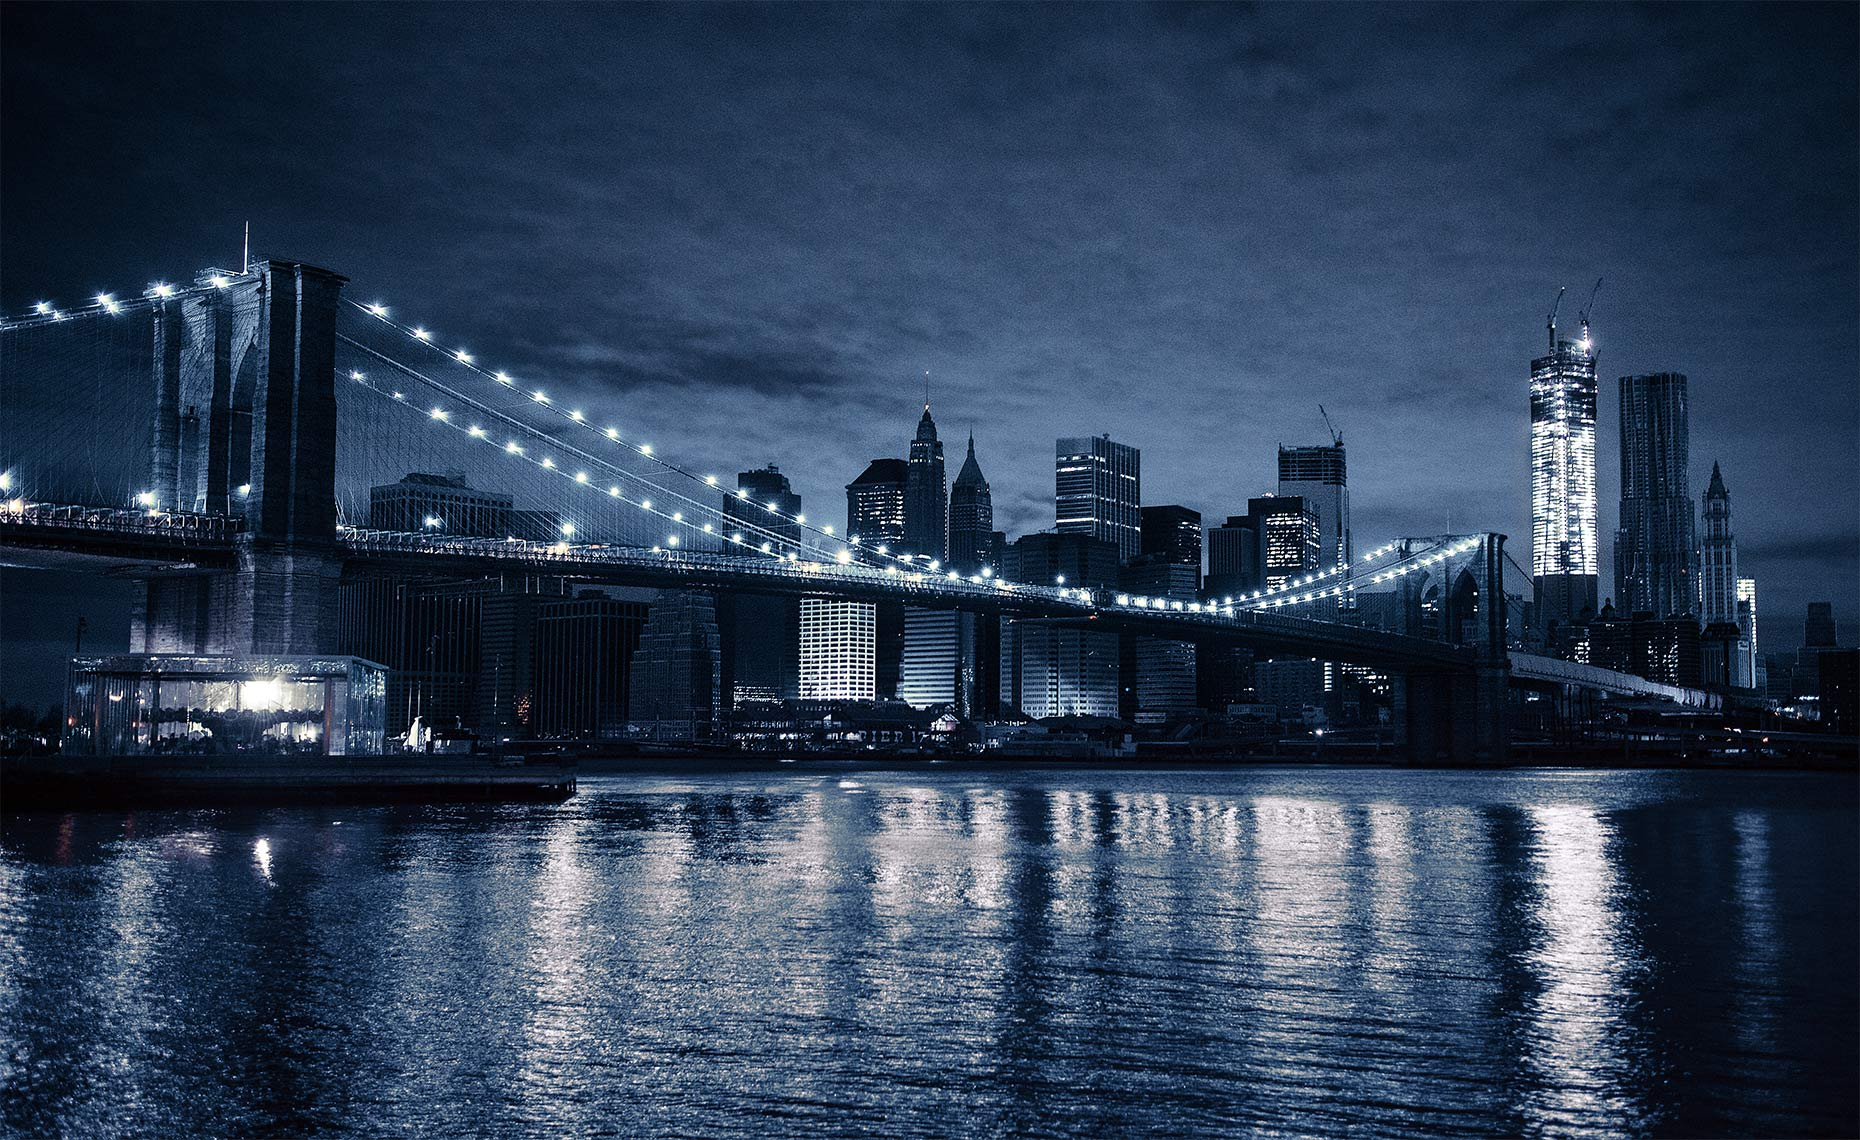 Brooklyn Bridge Hurricane Sandy Blackout, New York NY Postcard